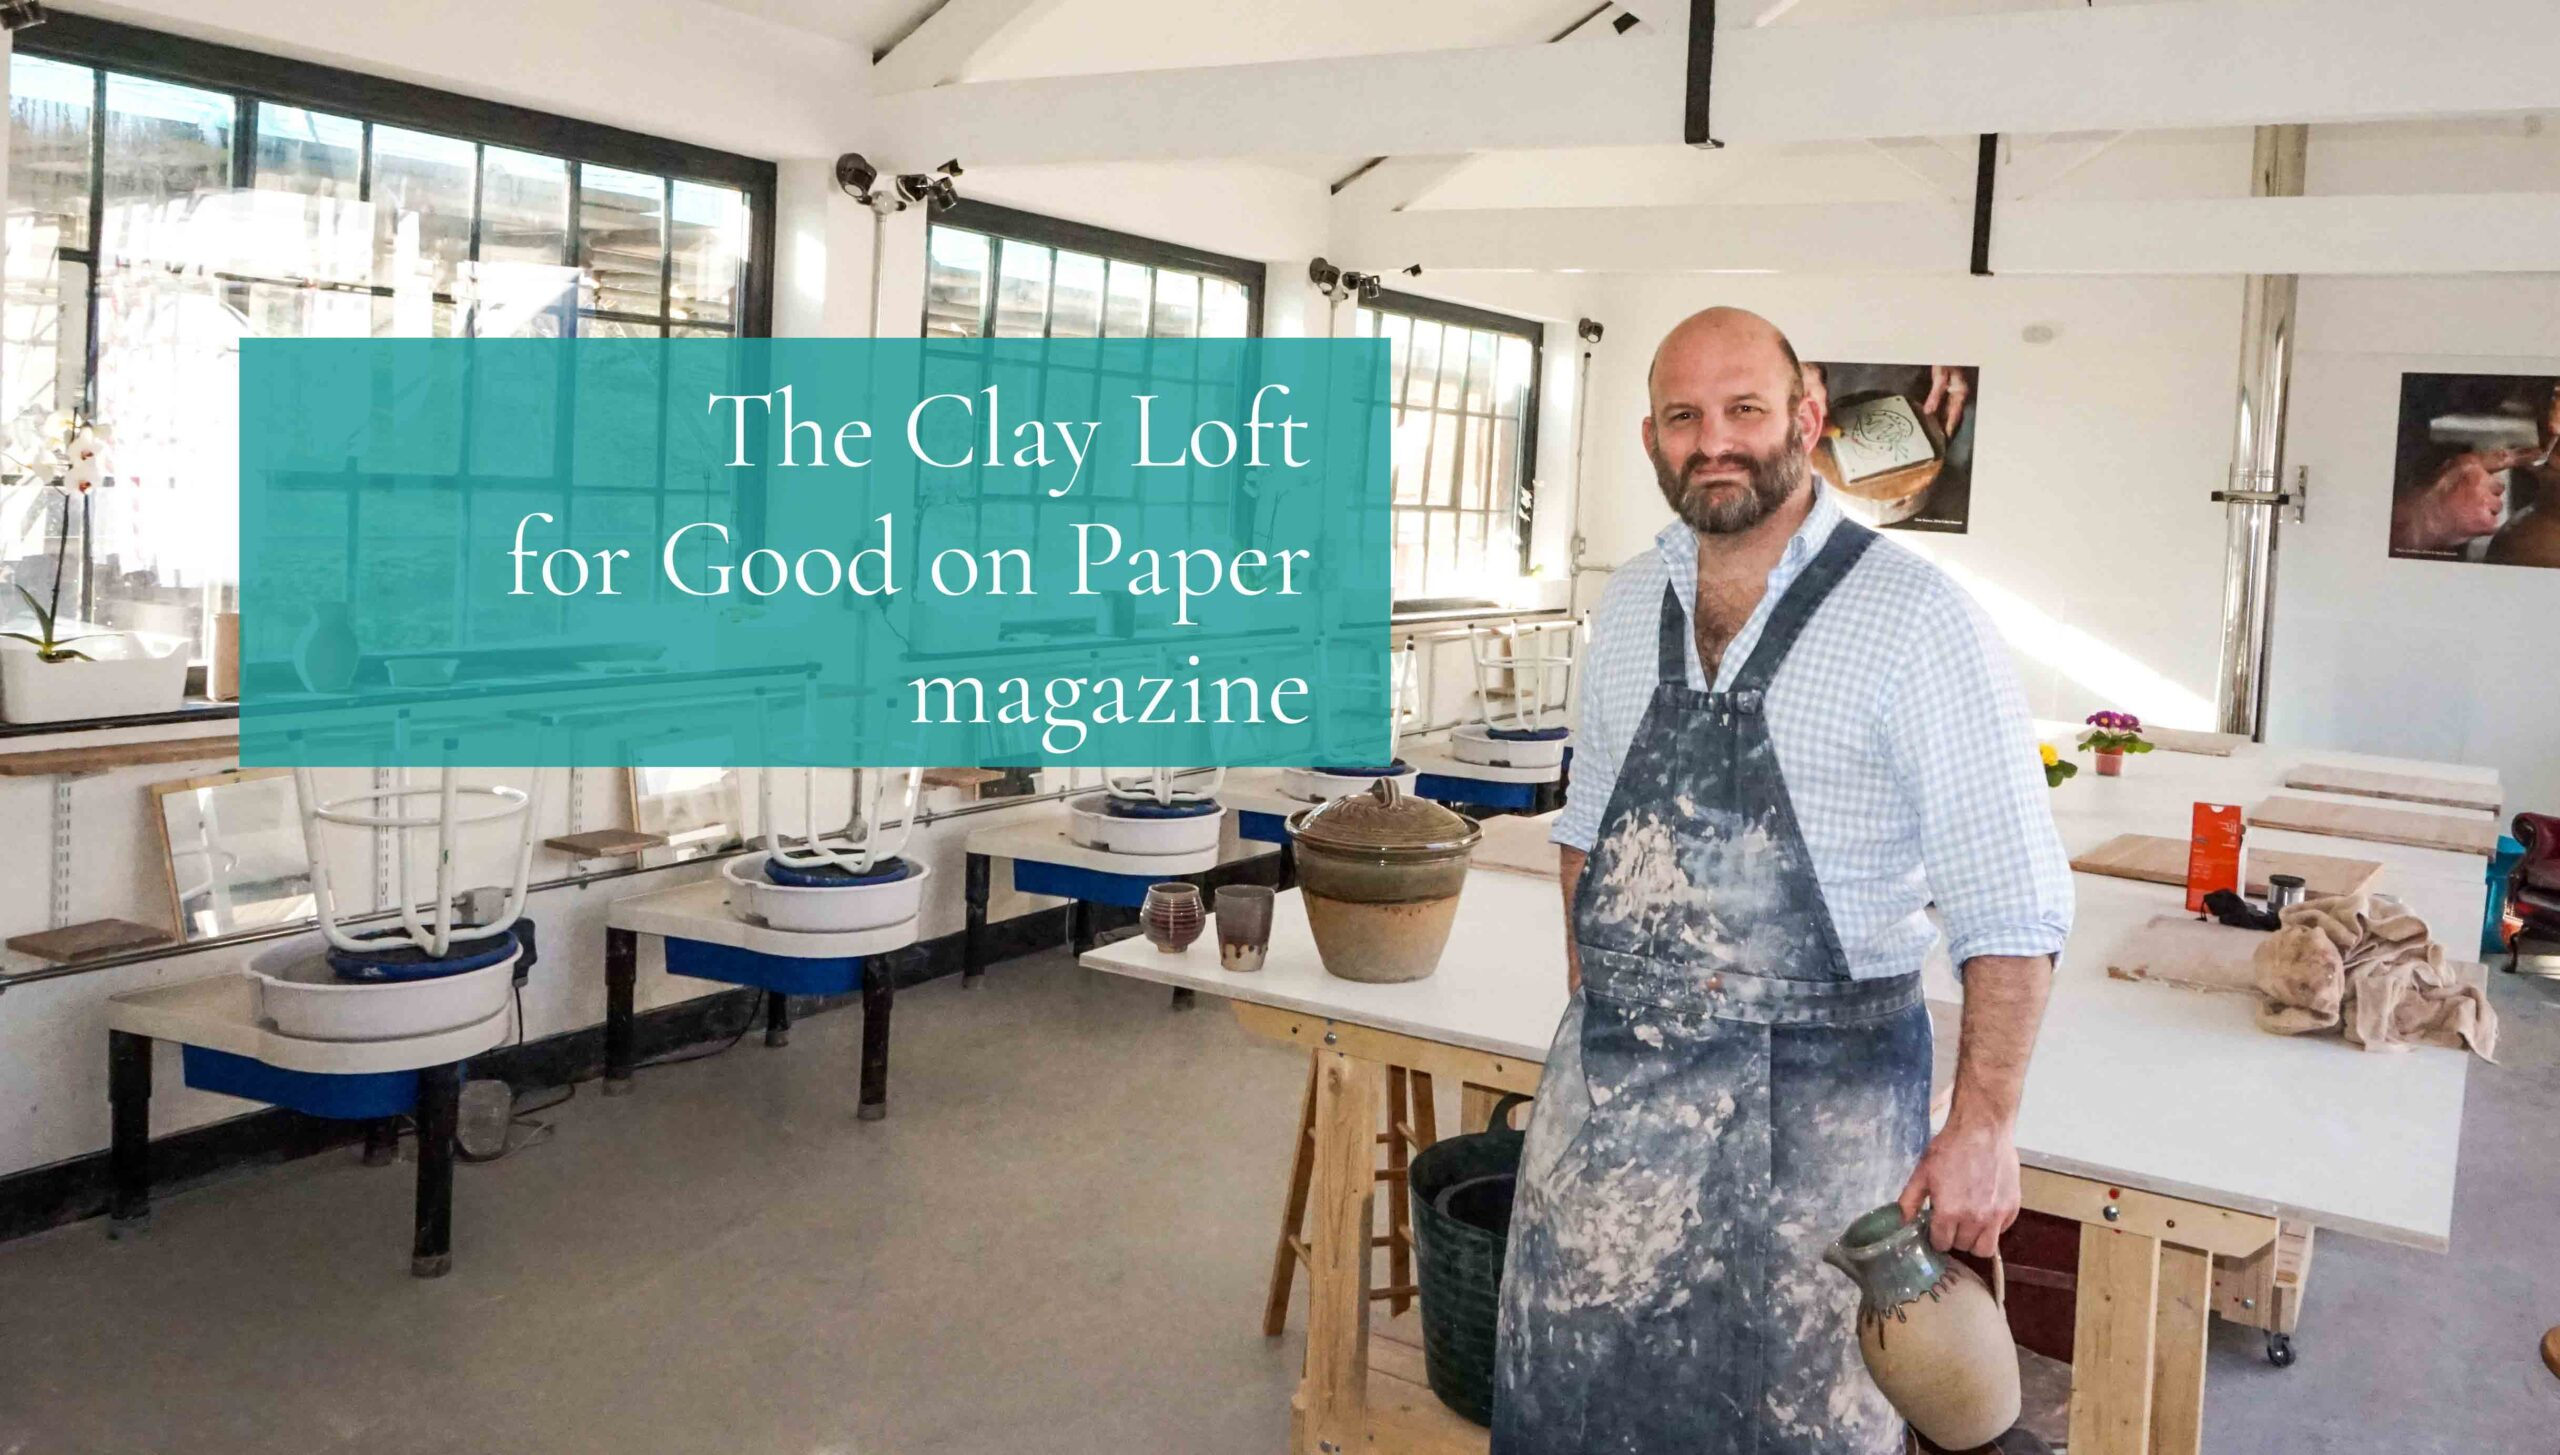 The Clay Loft for Good on Paper magazine